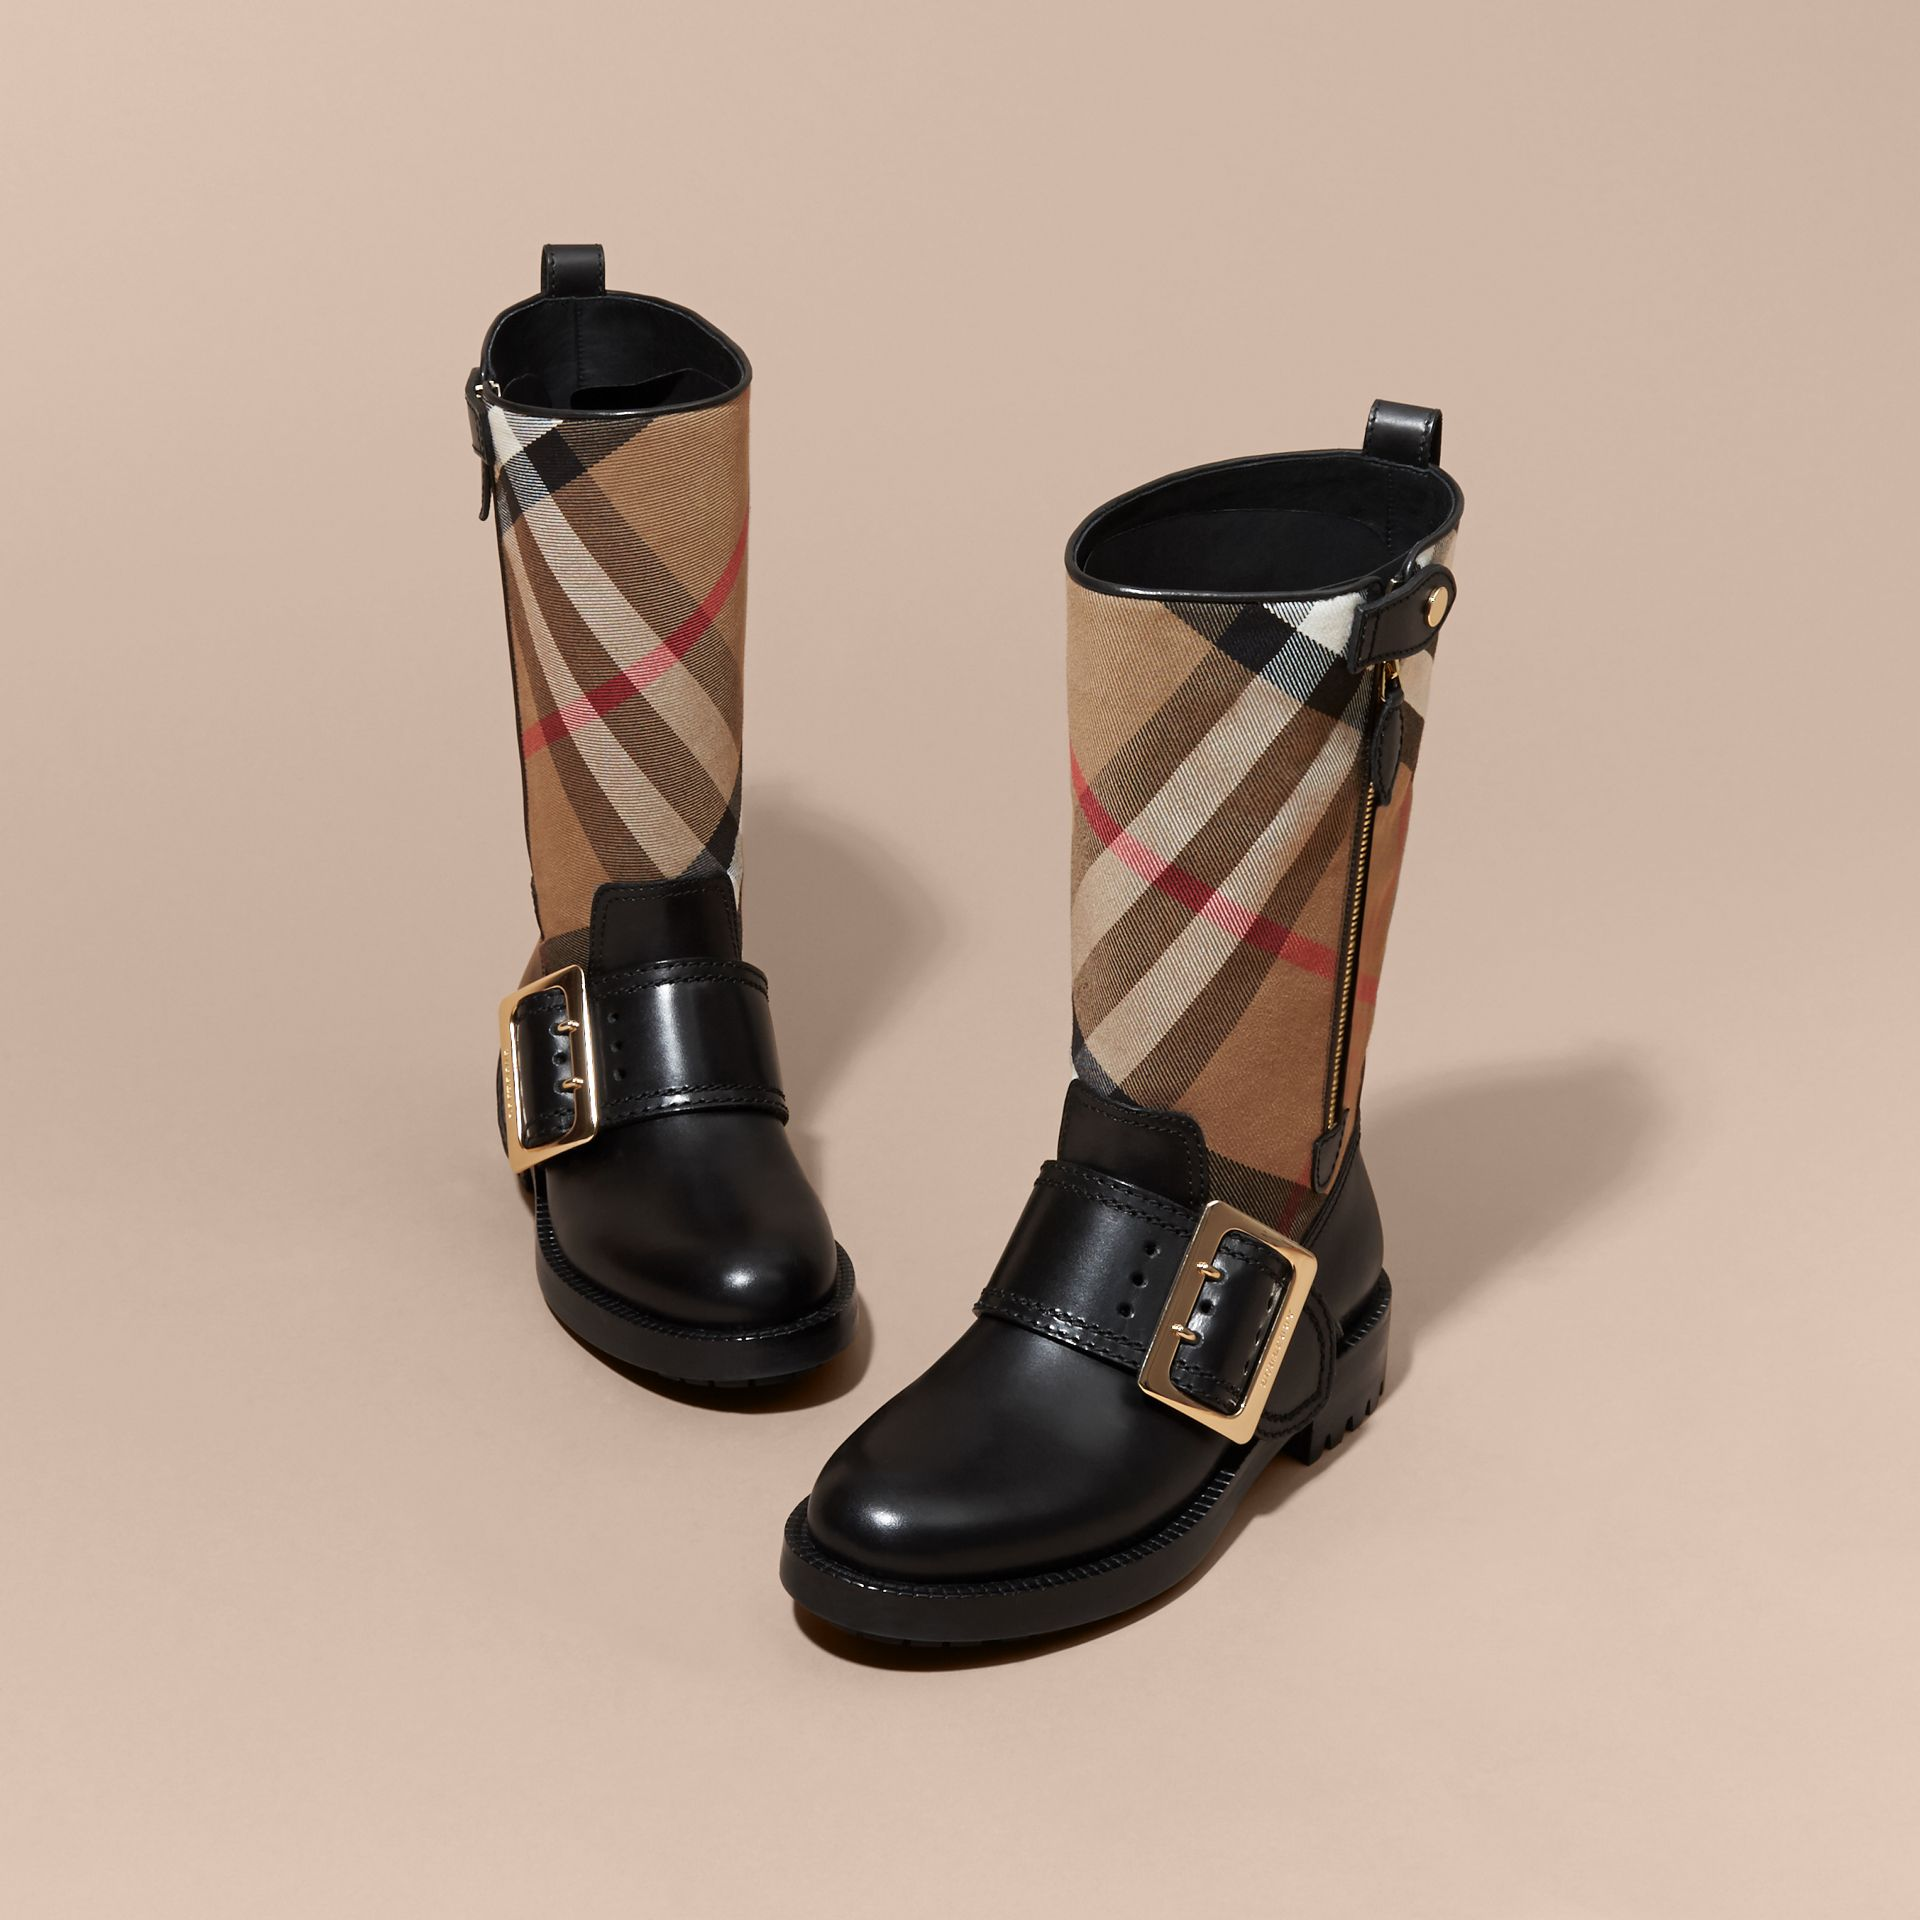 Classic check House Check Buckle Detail Leather Boots - gallery image 3